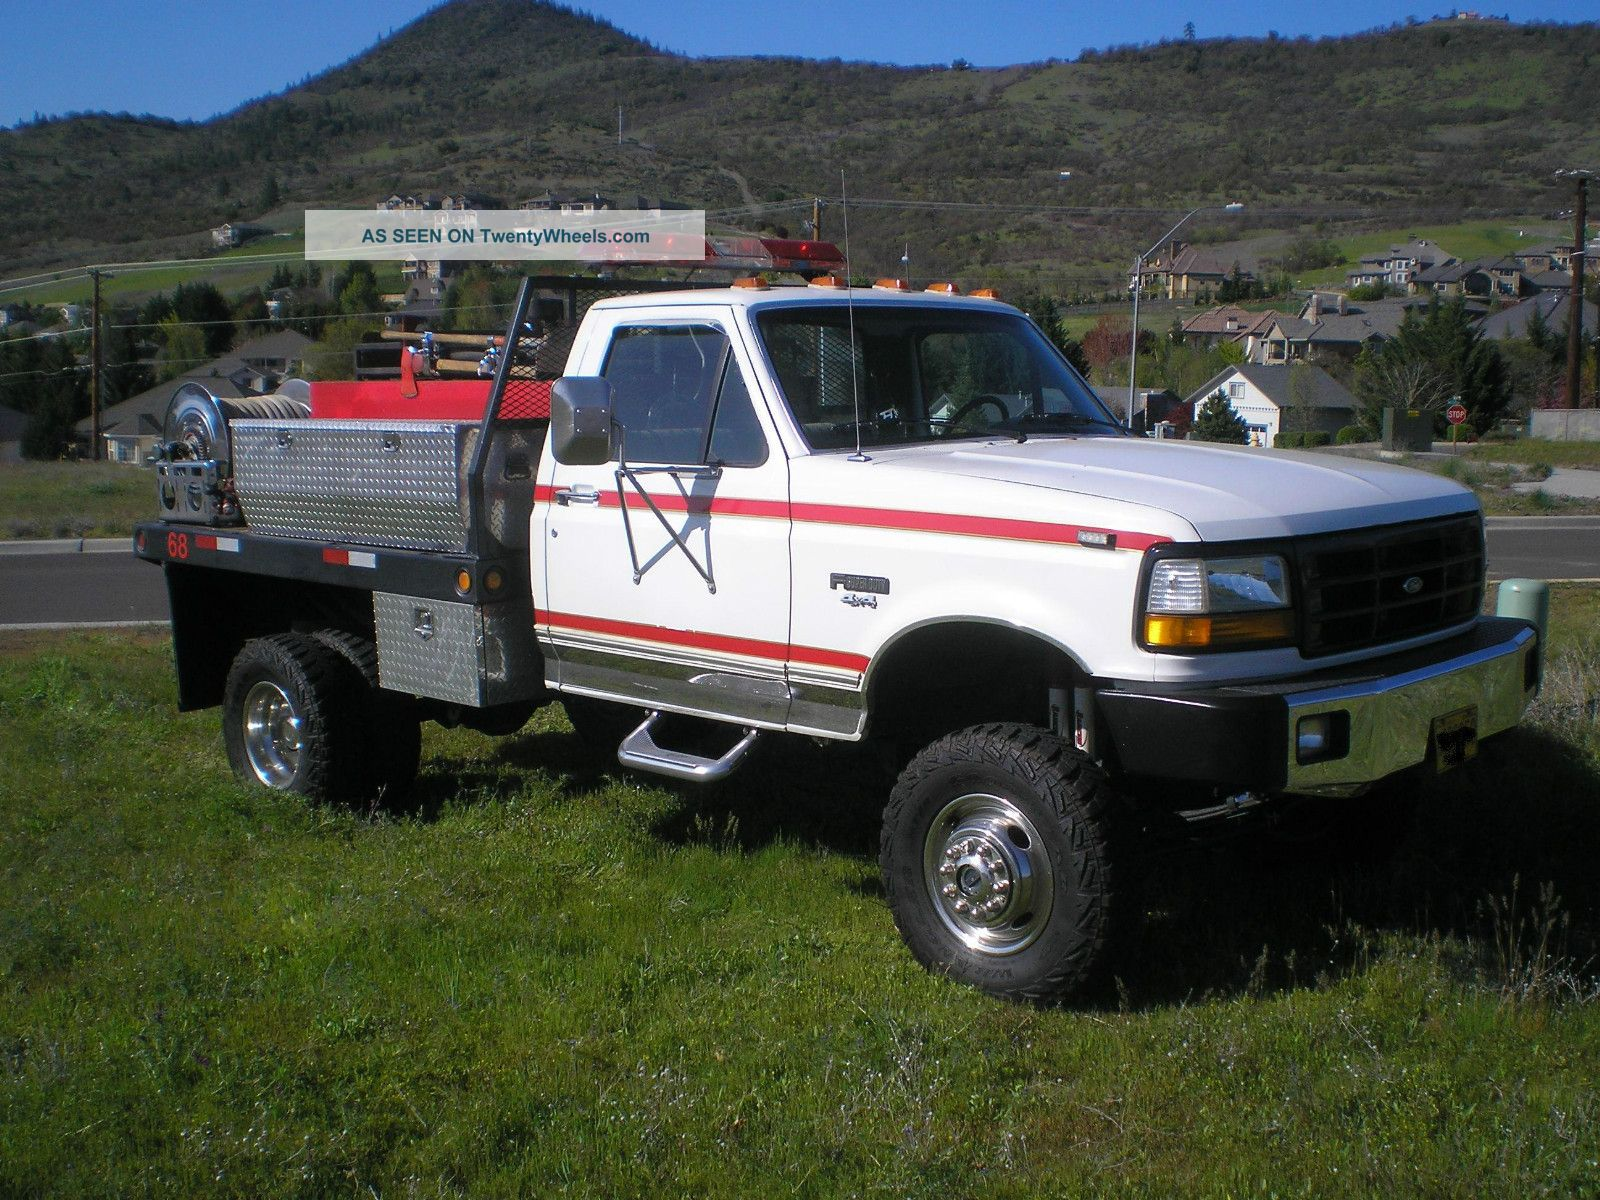 Dixie Union Covent Garden besides Orlandotruckservice in addition Track Excavator as well Sale as well 13080 1992 ford f 350. on international box truck